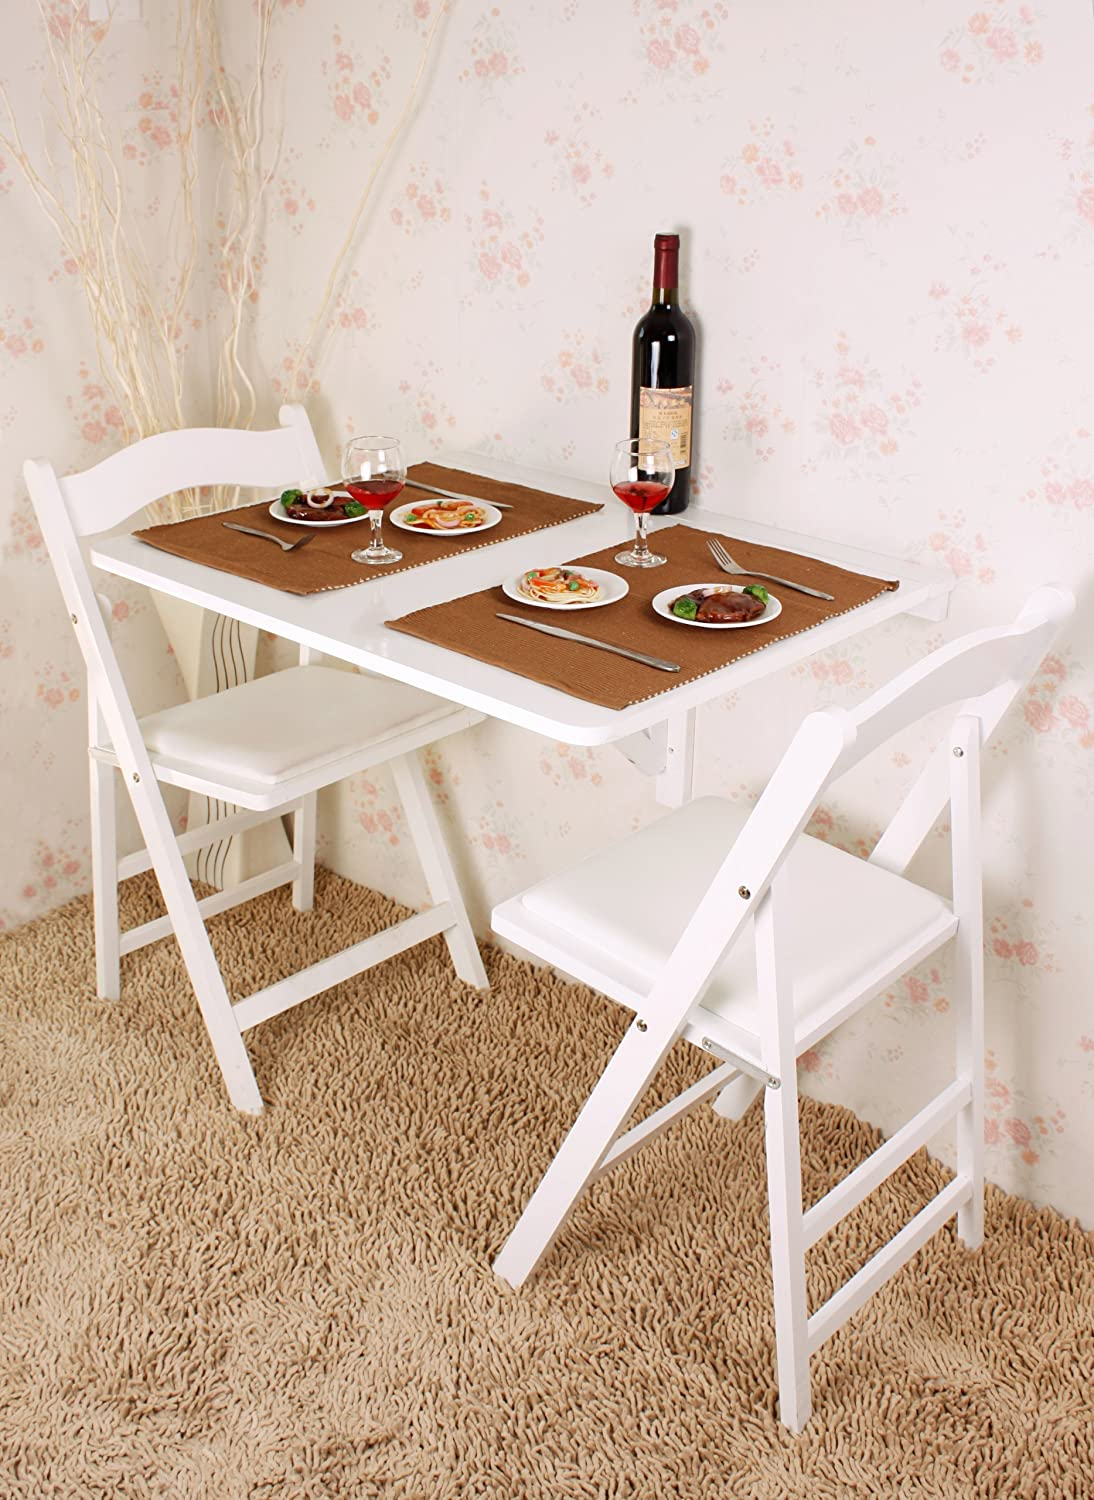 petite table de cuisine pliante stunning norbo table murale rabat ikea pliante la table occupe. Black Bedroom Furniture Sets. Home Design Ideas